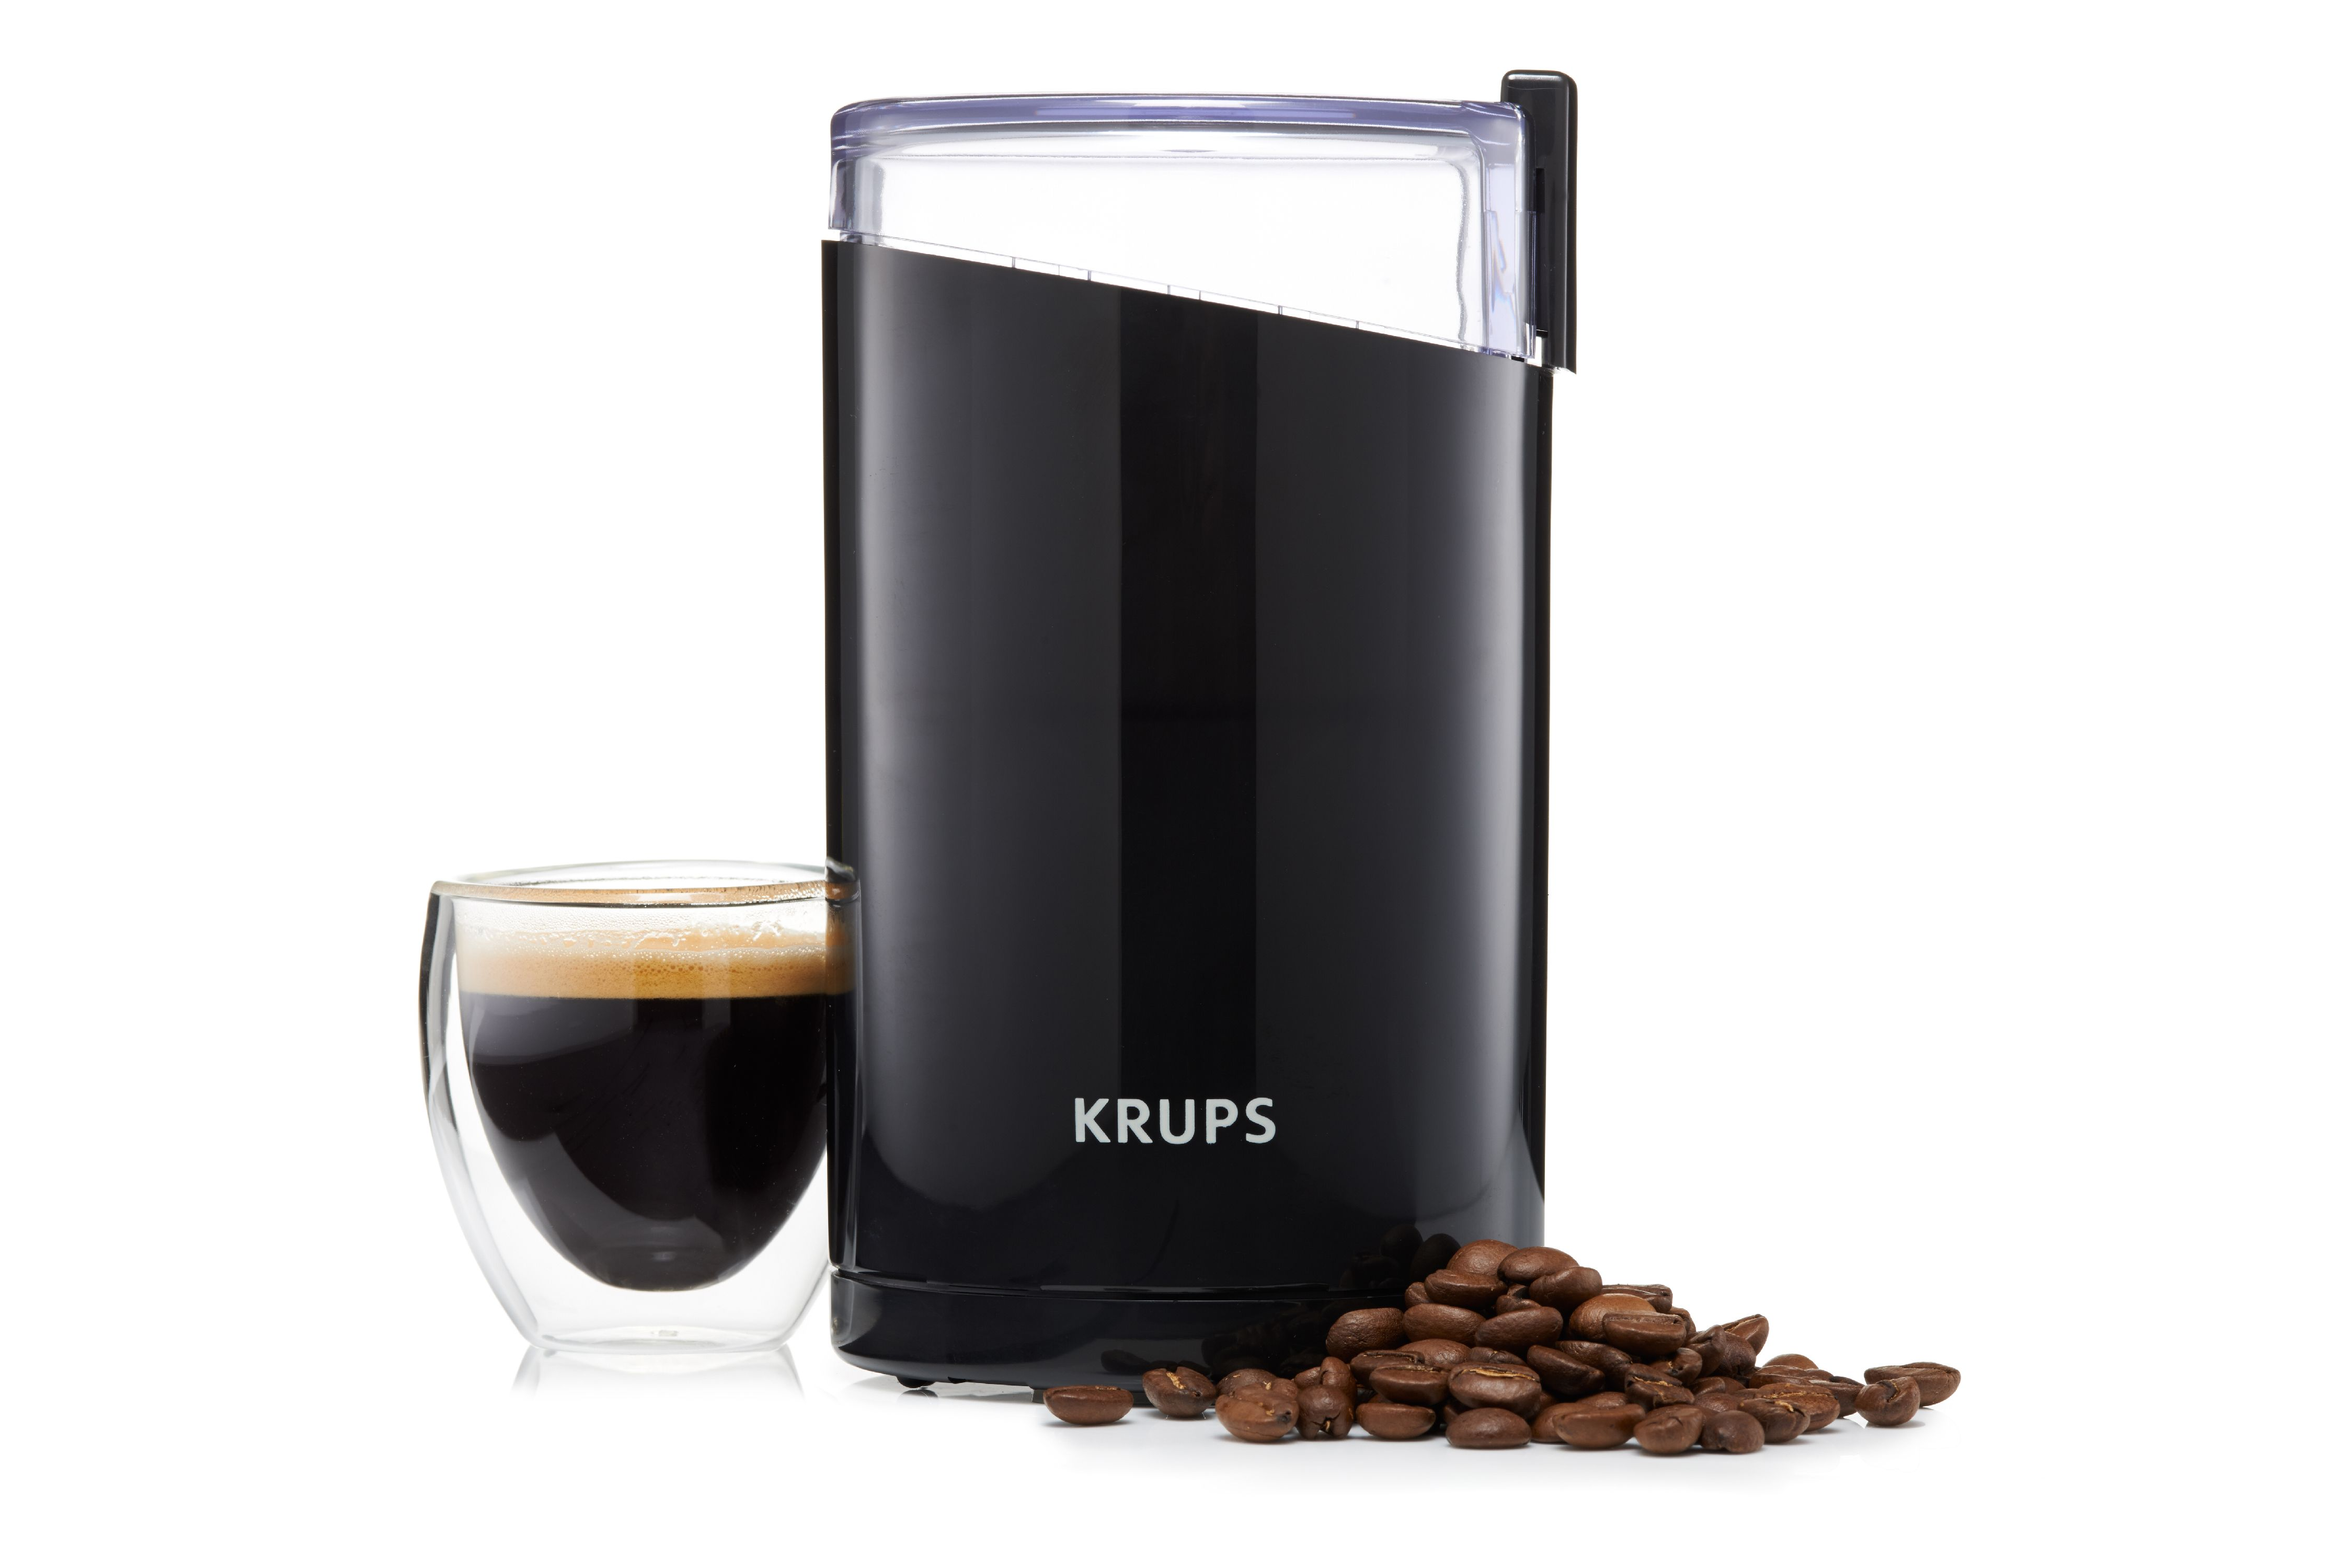 krups, electric coffee and spice grinder, stainless steel blades